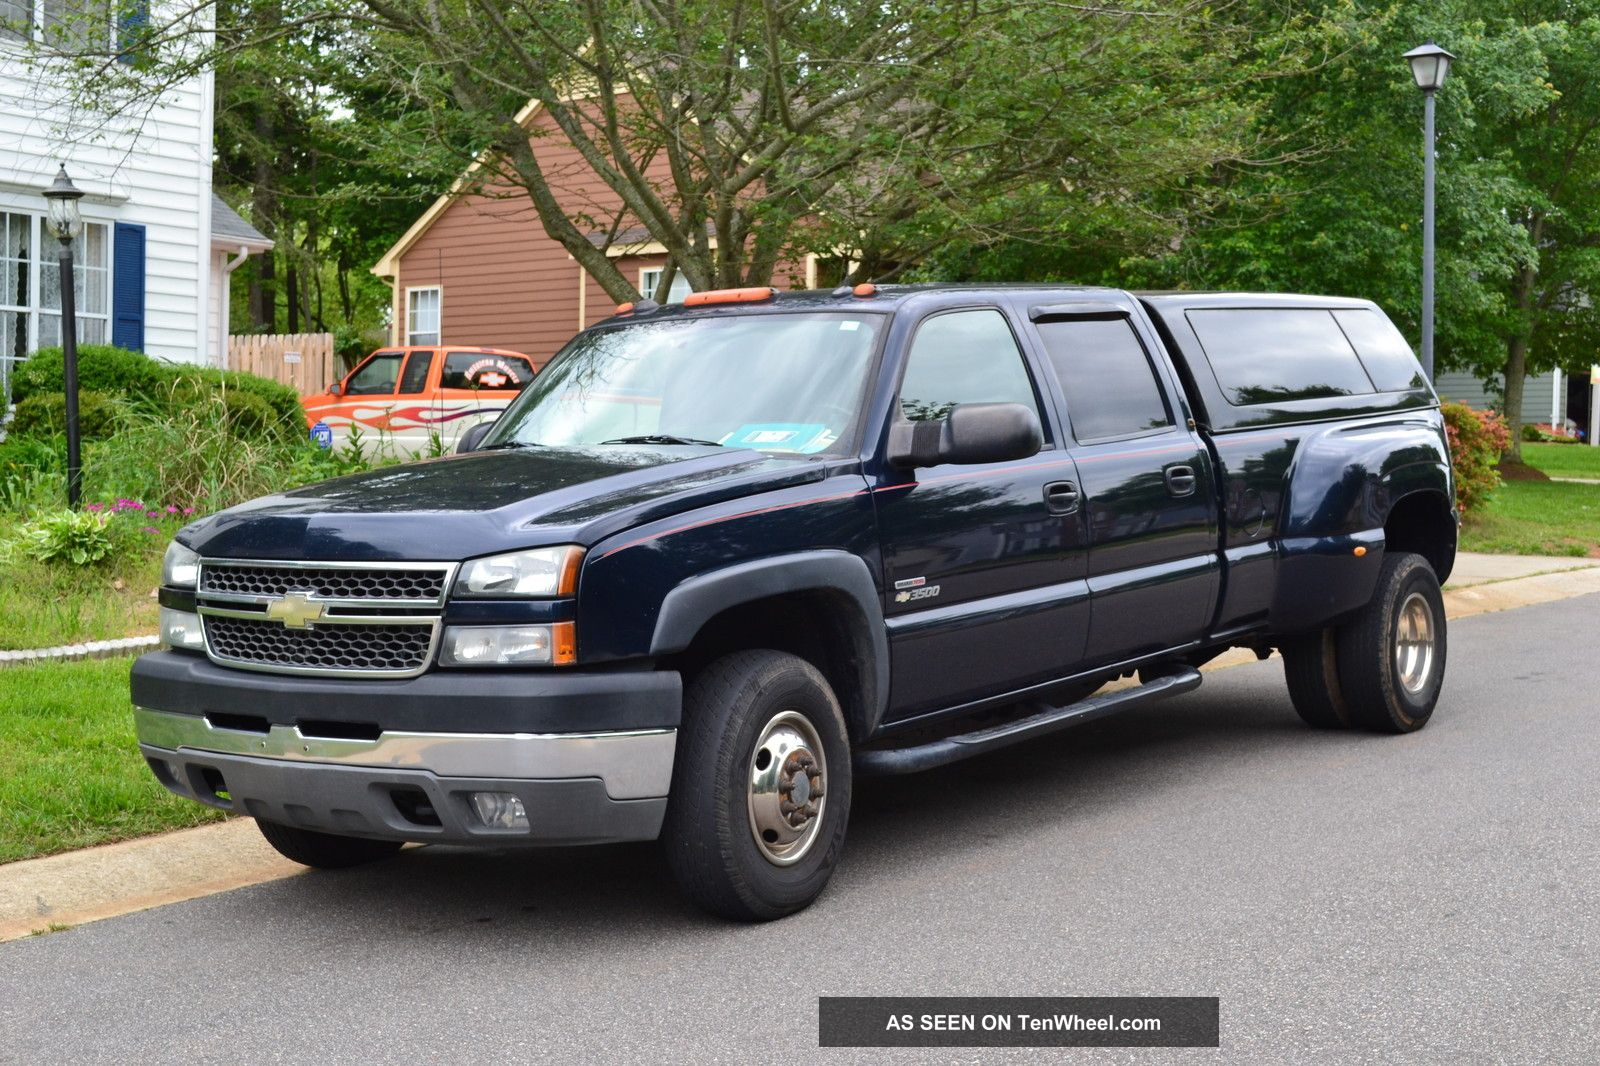 Chevy diesel dually : 2005 Chevy Silverado 3500 Dually